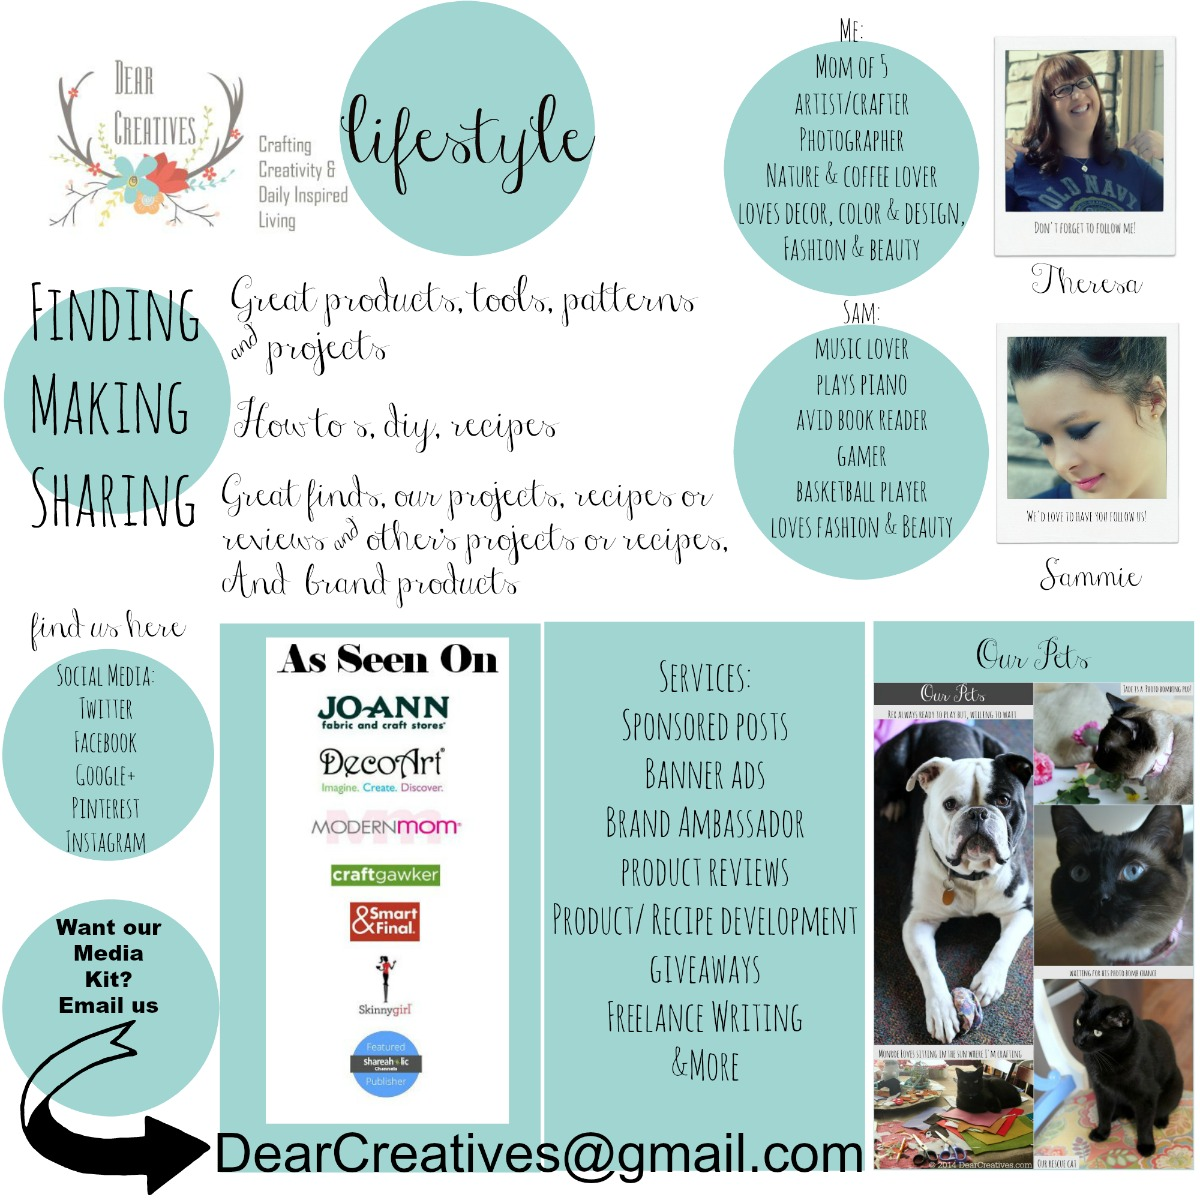 PR Friendly |PR| Brands |Brand Relationships with DearCreatives.com |About Page_DearCreatives.com_© 2015 Theresa Huse